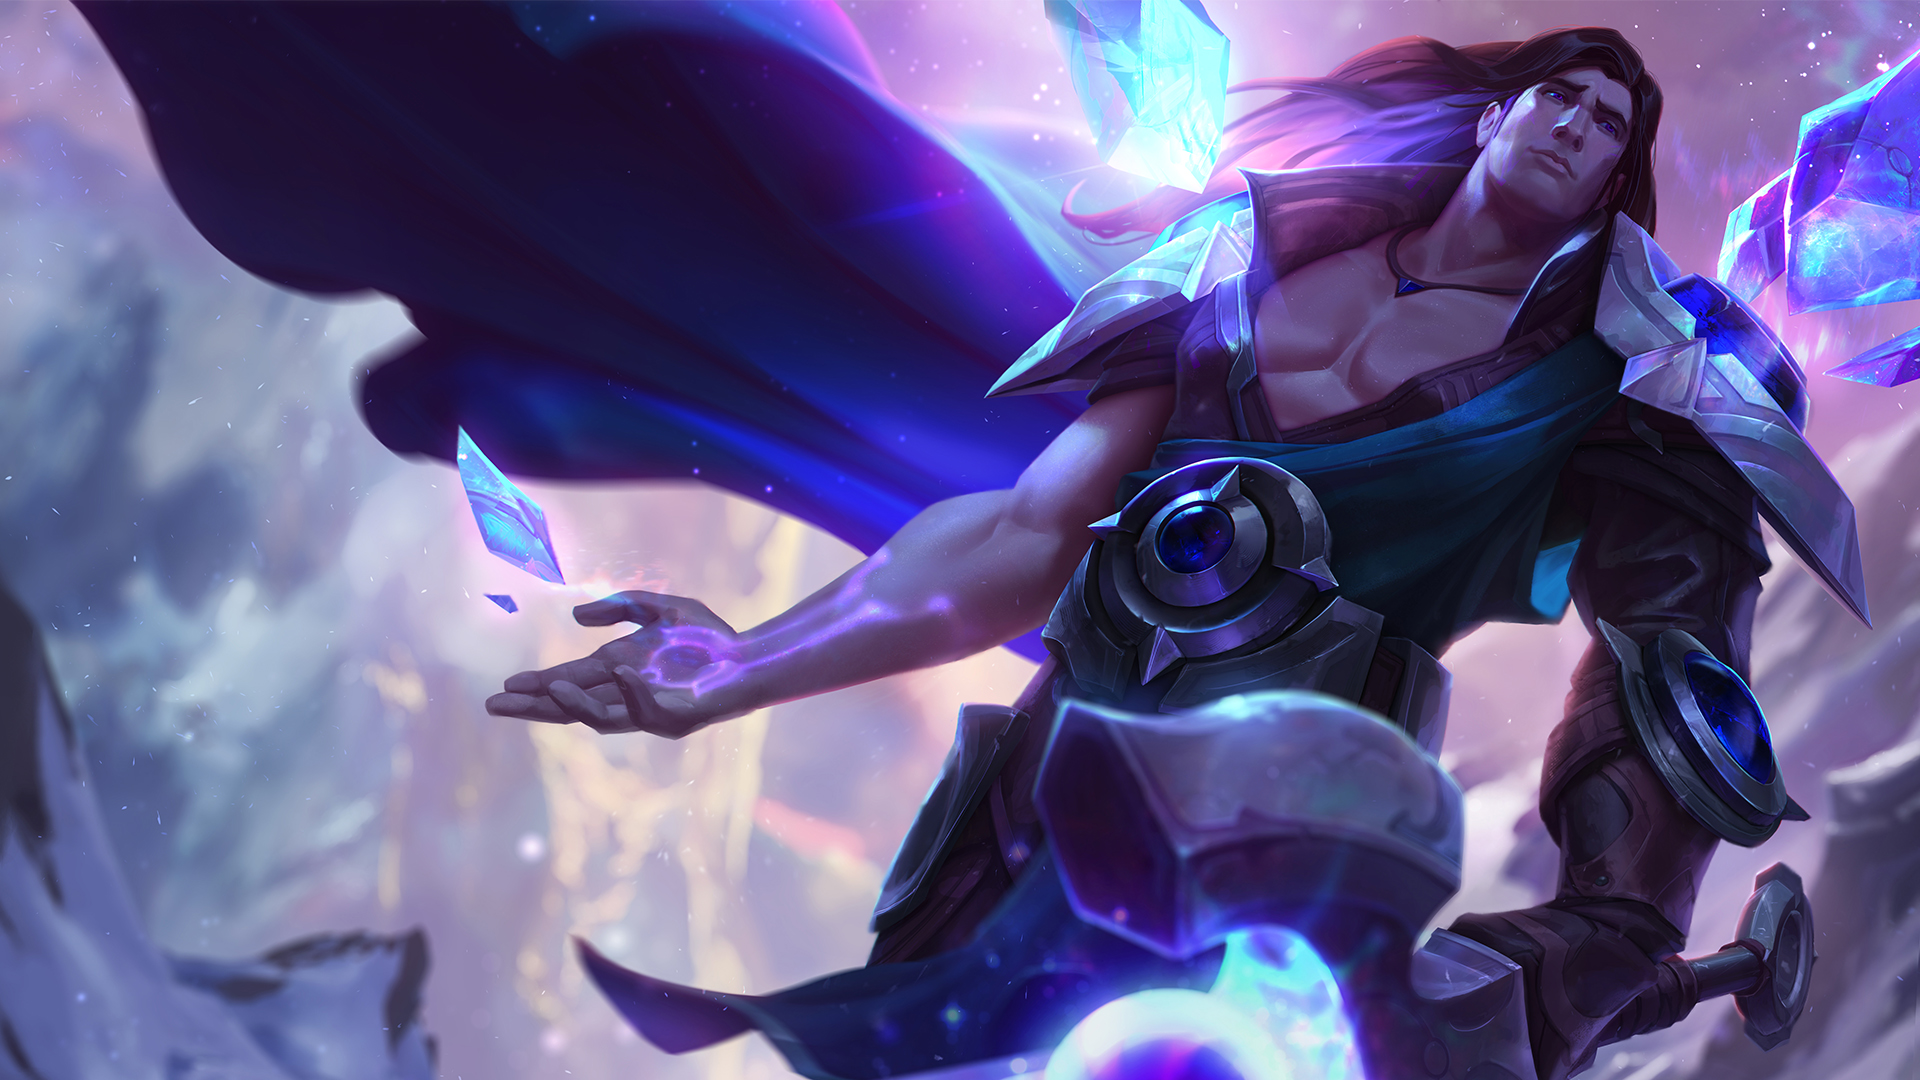 New Taric Rework Splash Art League of Legends Know Your Meme 1920x1080